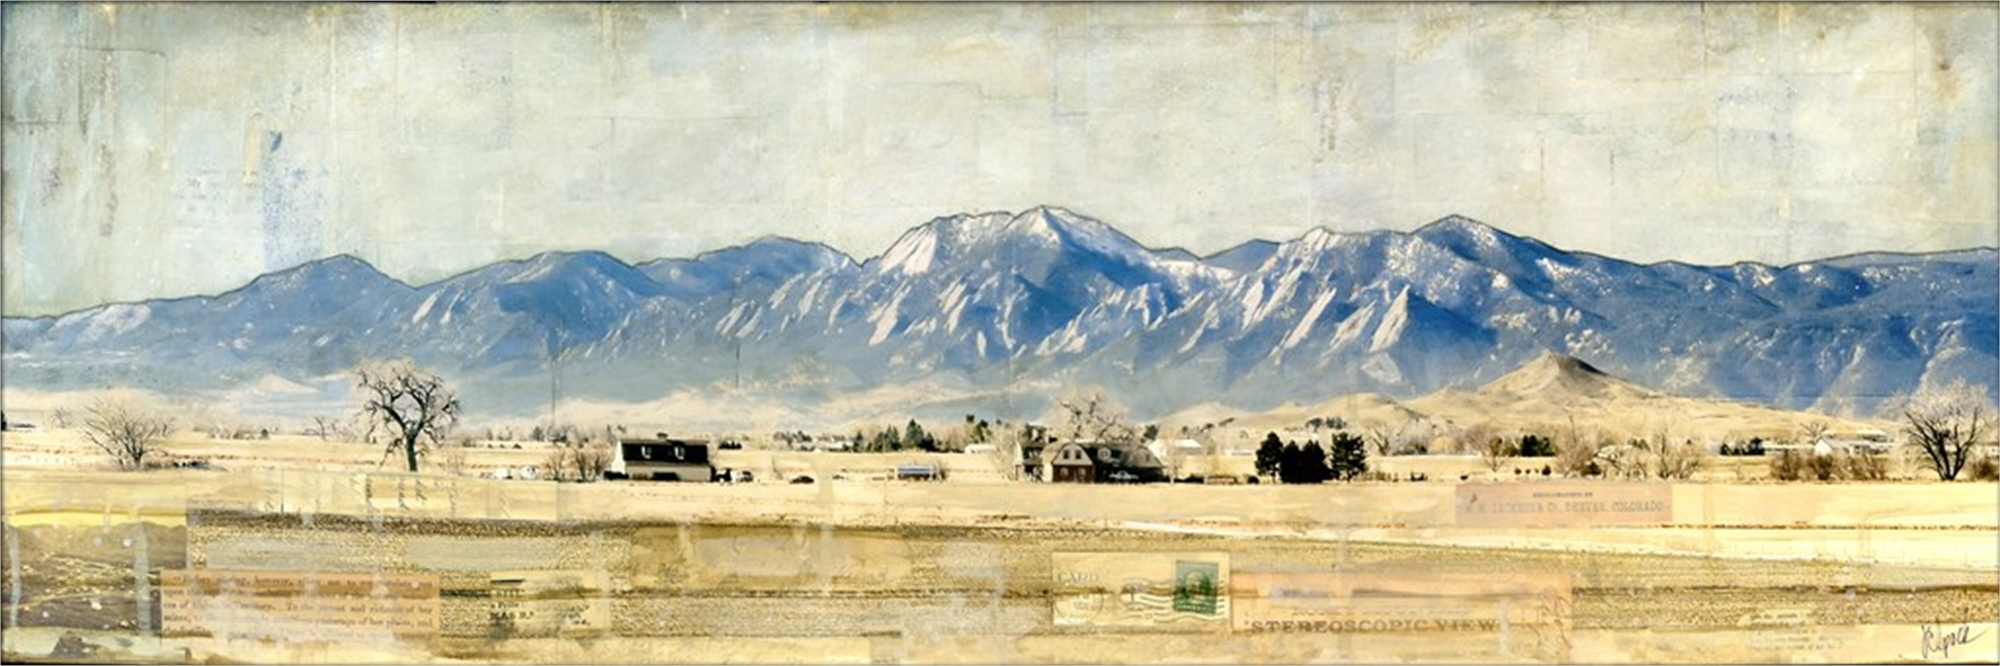 Front Range Horizon by JC Spock